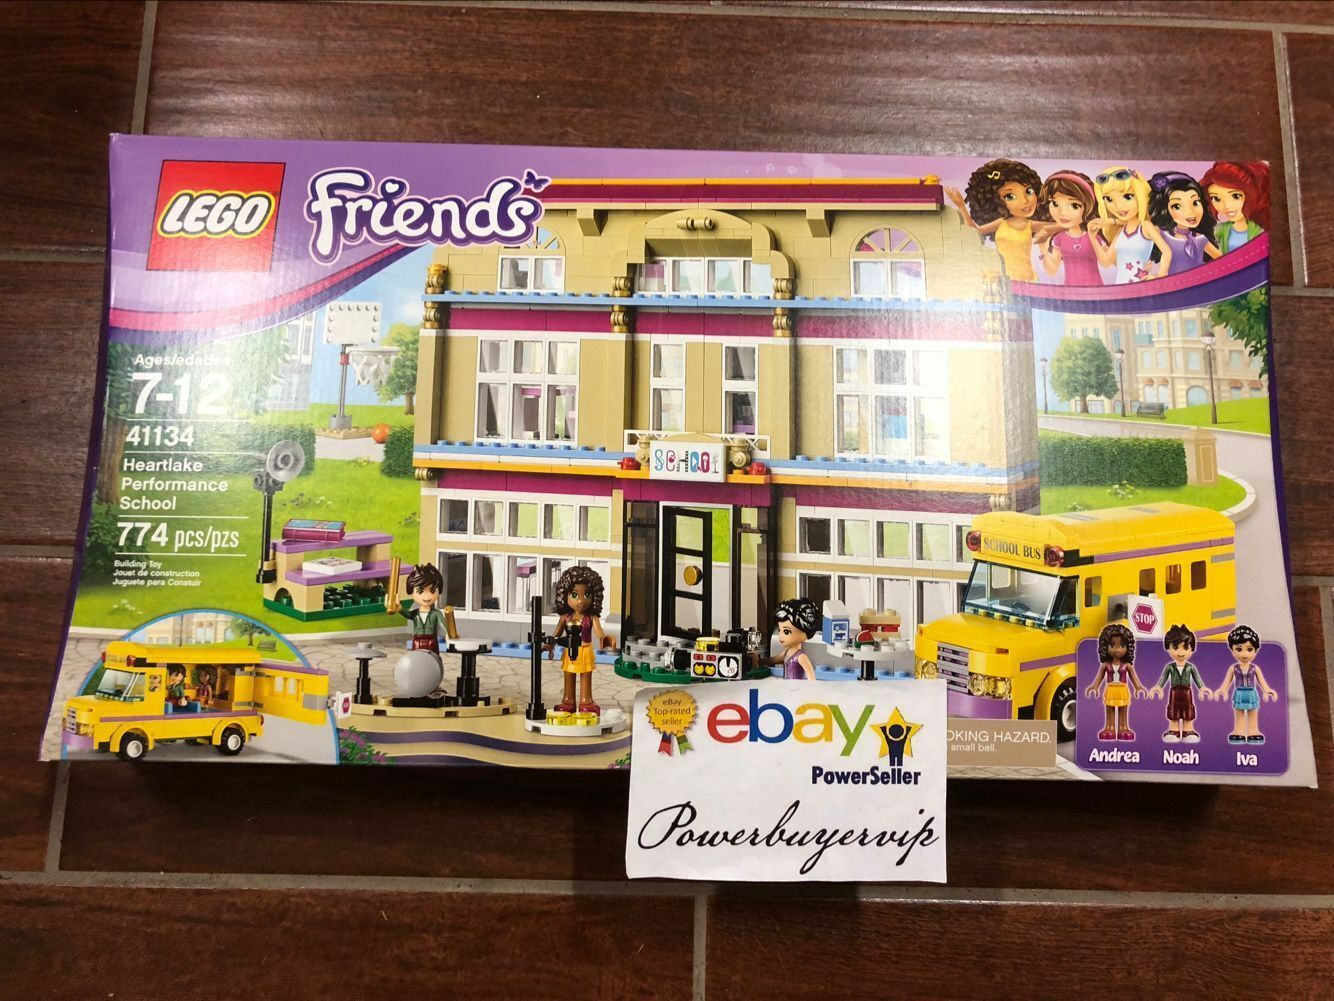 NEW LEGO 41134 LEGO Friends Heartlake Performance School Girls Gift 2 DAY GET